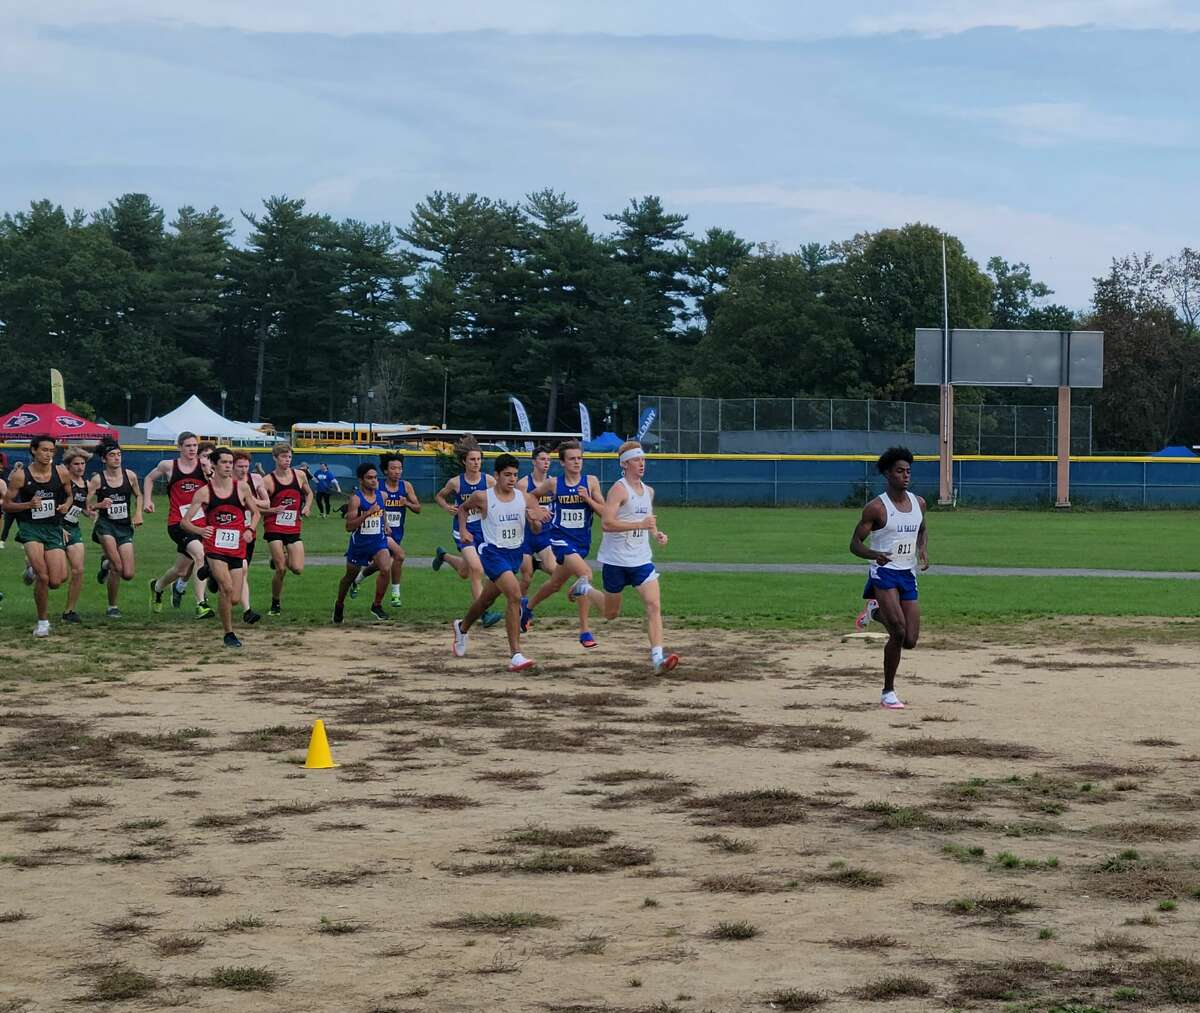 Gitch Hayes of La Salle leads the Division I boys' field early in the race Saturday at the Grout Invitational.